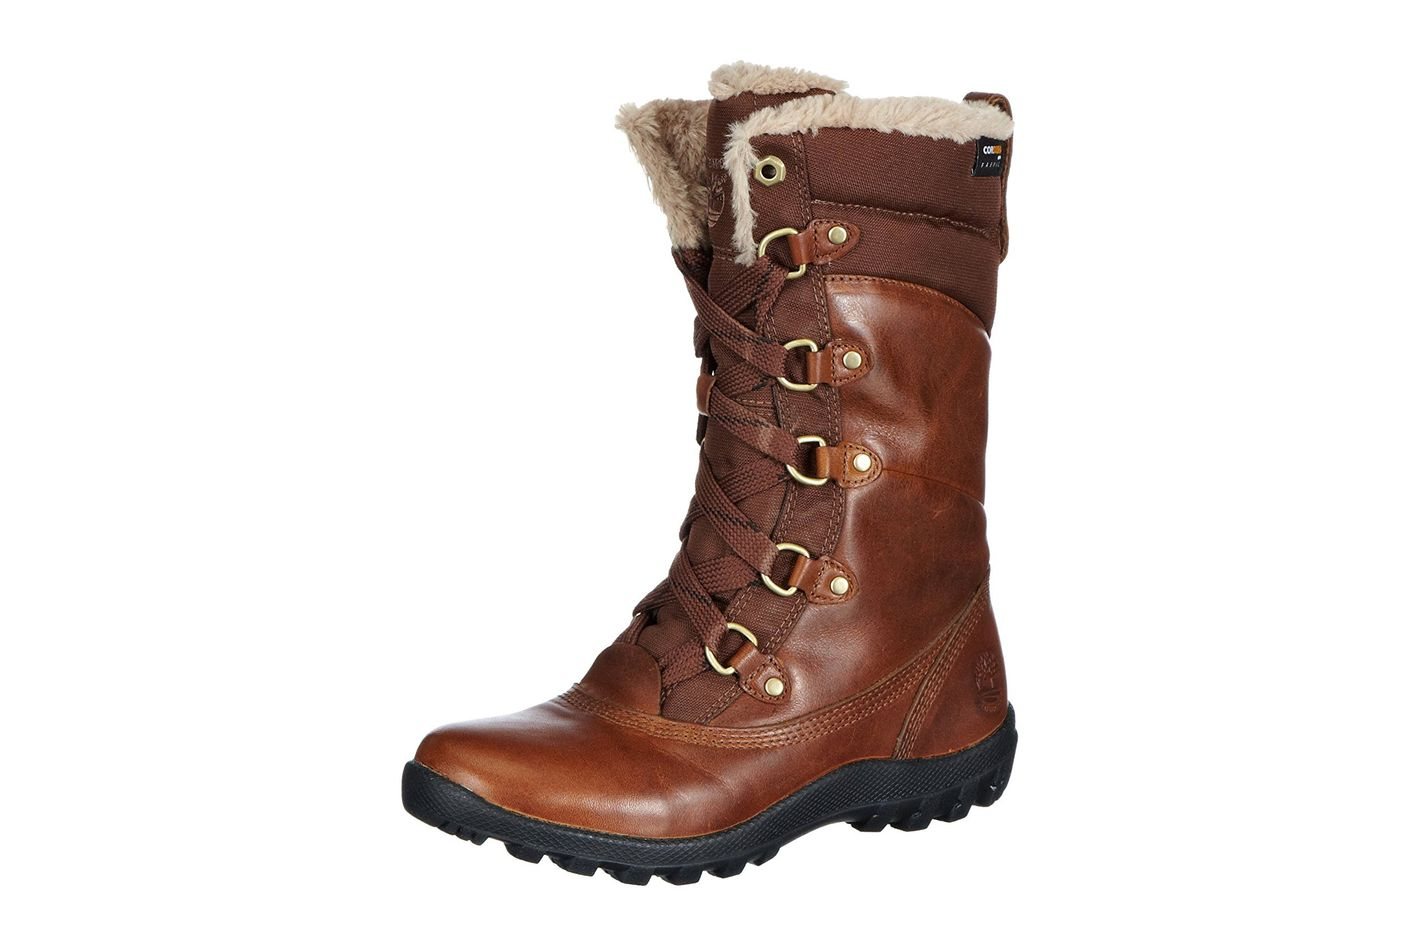 Timberland Women's MT Hope Mid Waterproof Boot